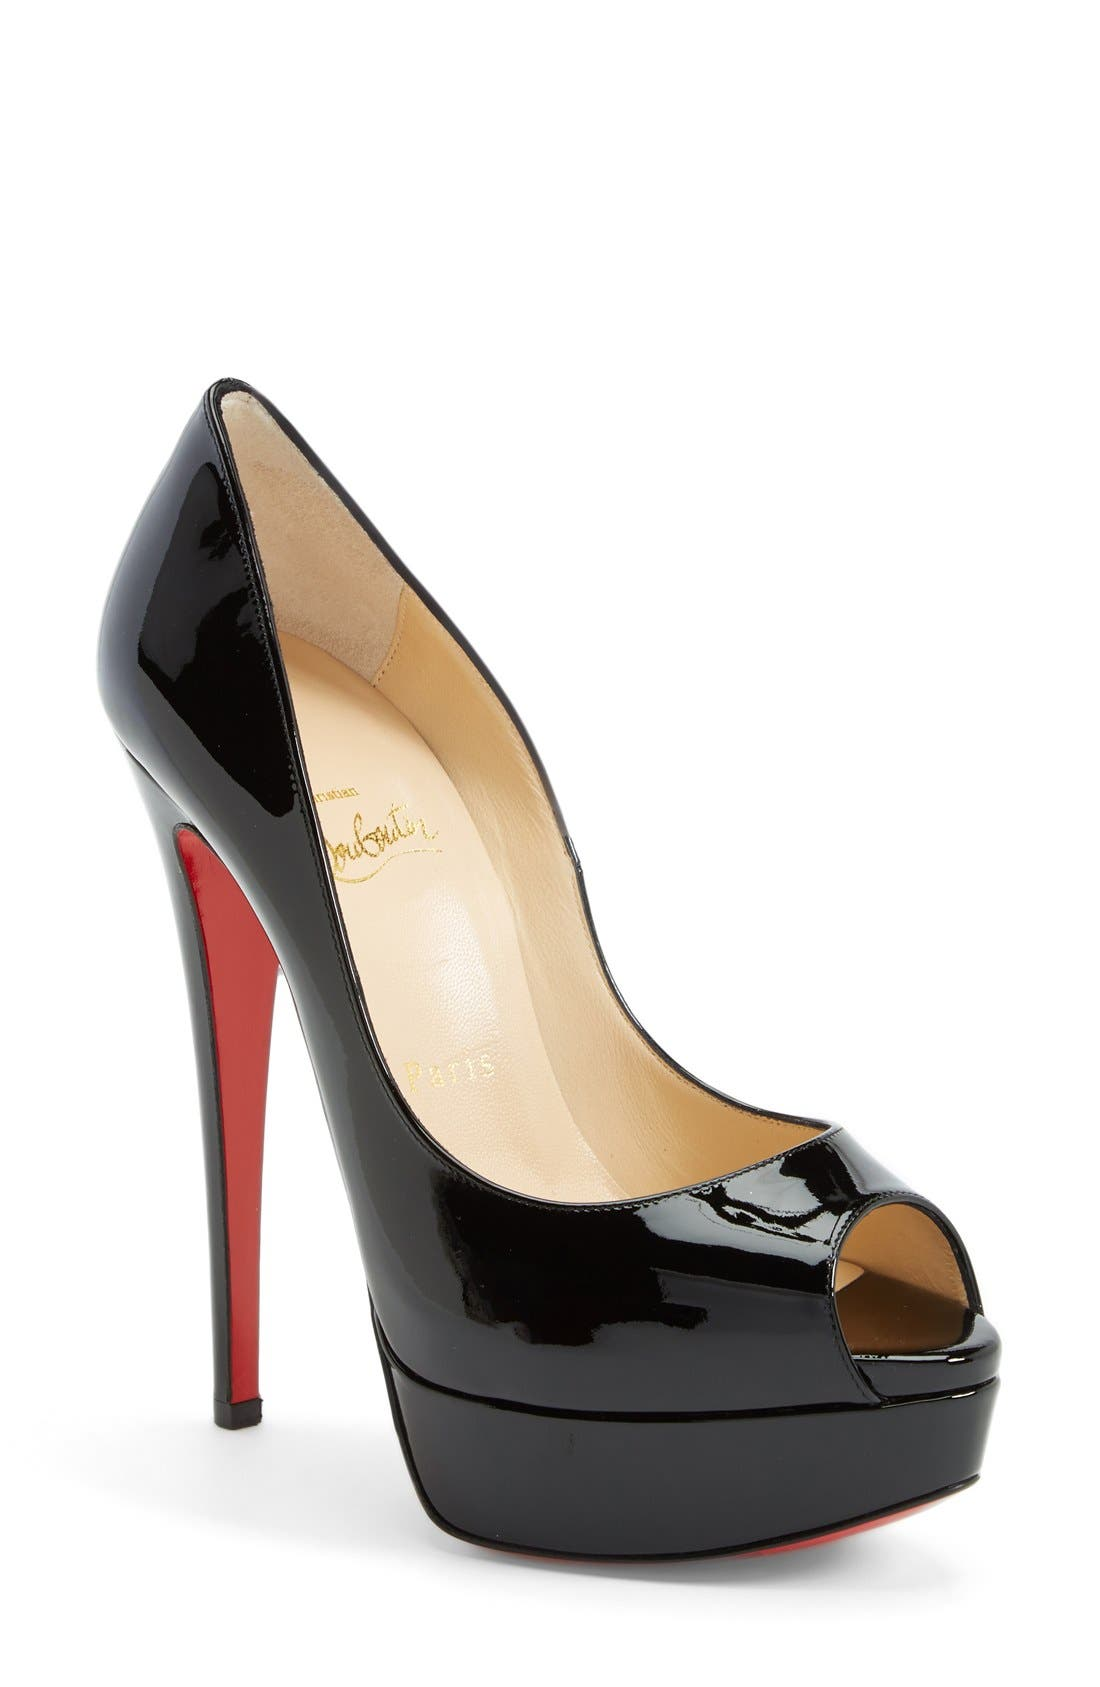 CHRISTIAN LOUBOUTIN Lady Peep Open Toe Pump